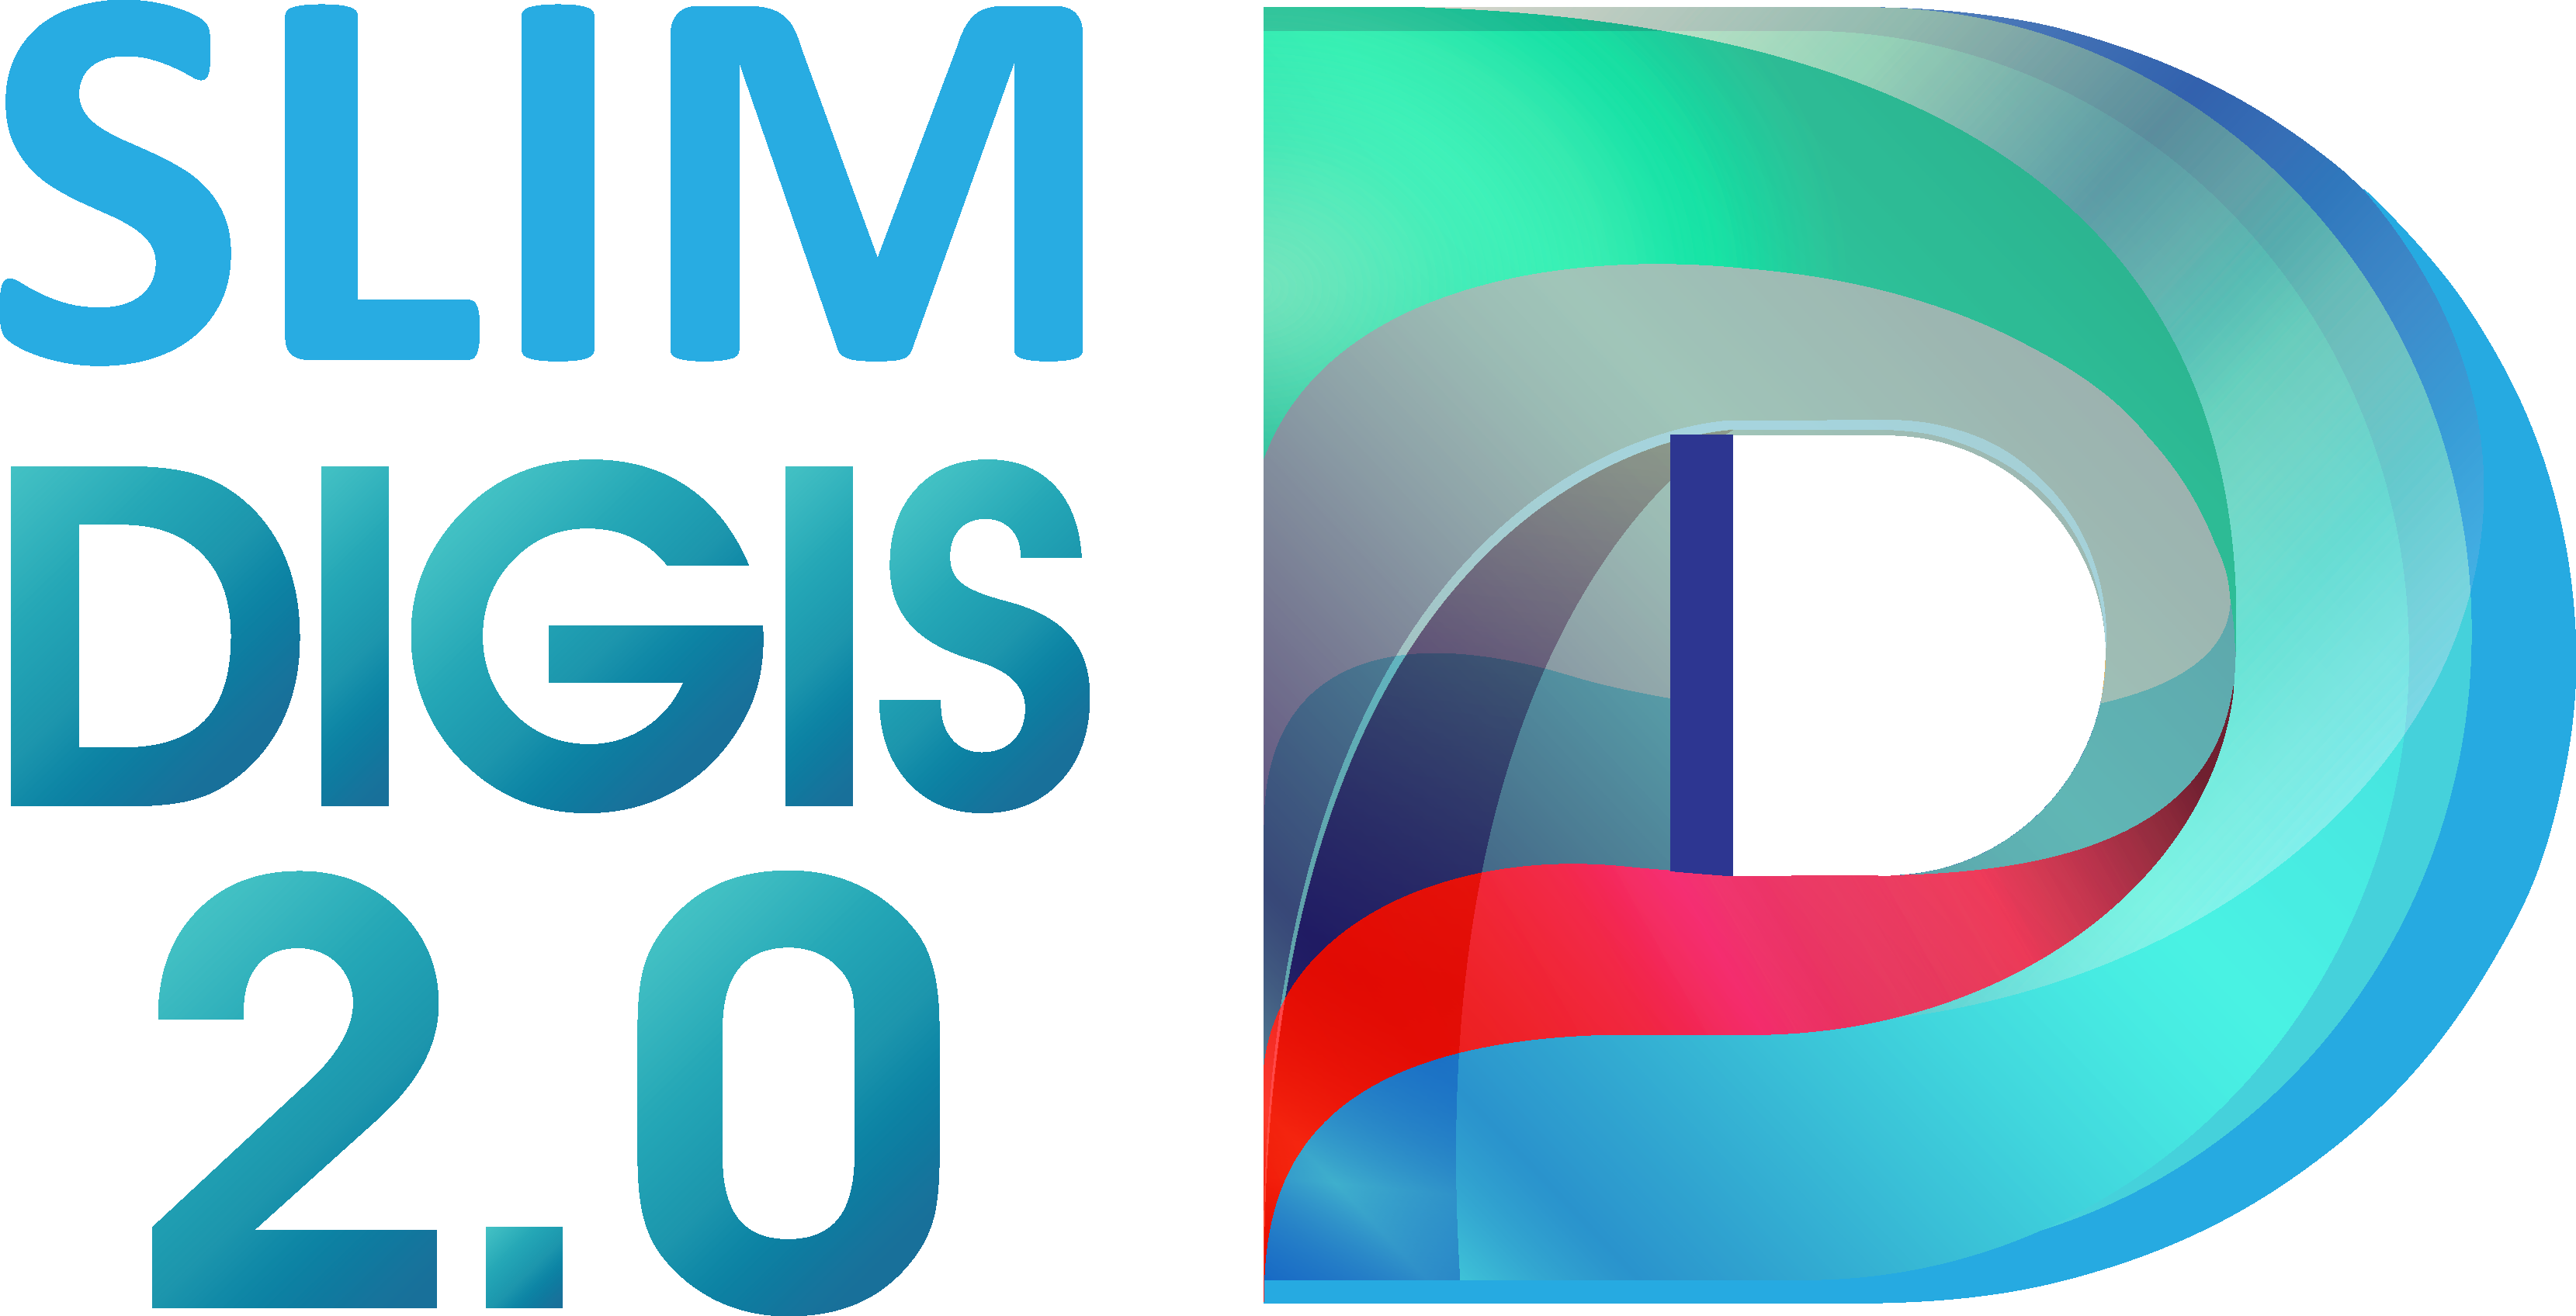 Sri Lanka Institute of Marketing to conduct SLIM DIGIS 2020